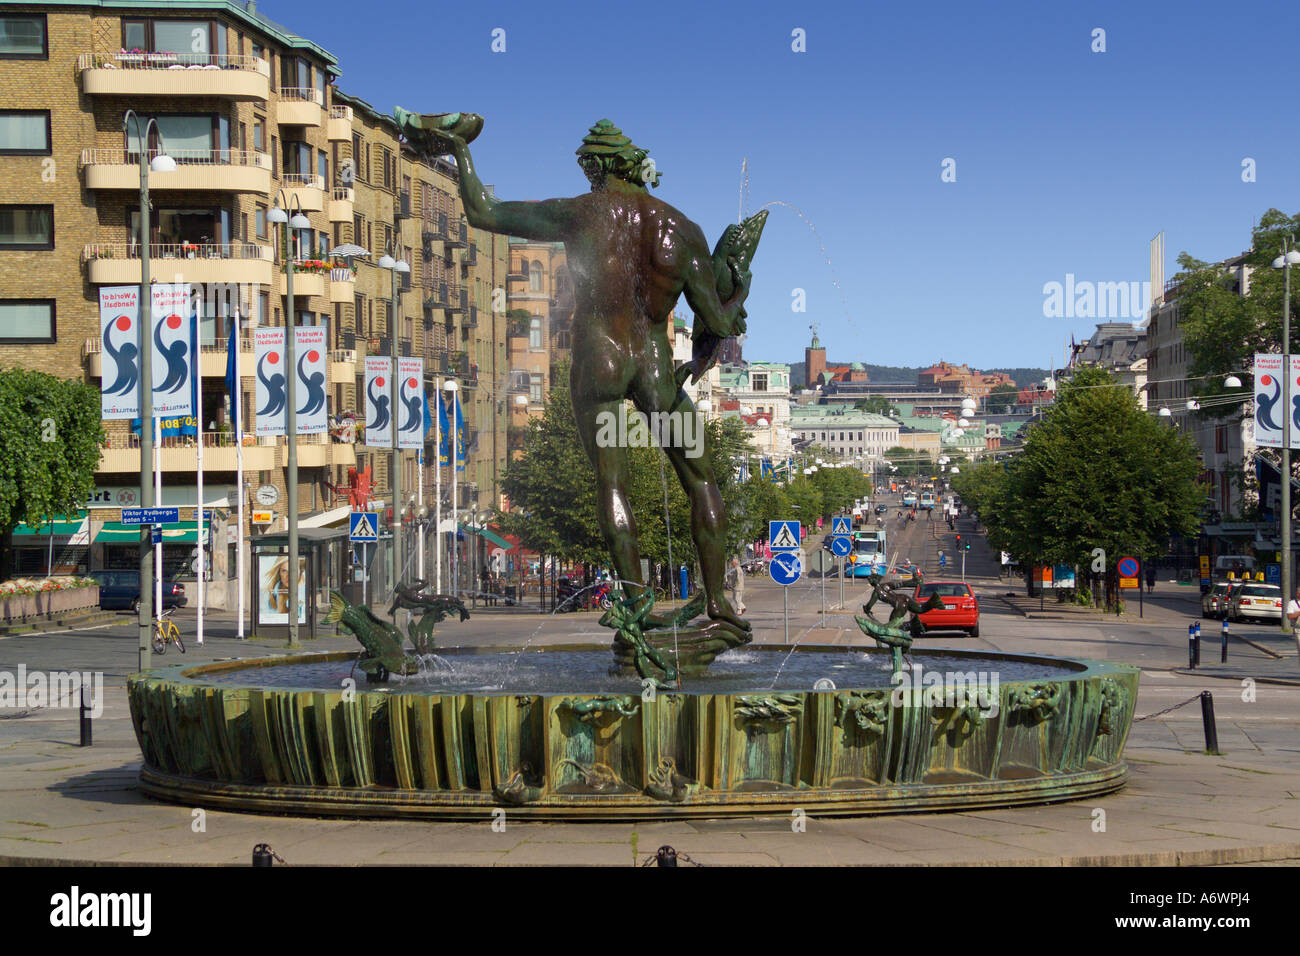 Statue of Poseidon and the Avenyn Gothenburg Sweden - Stock Image